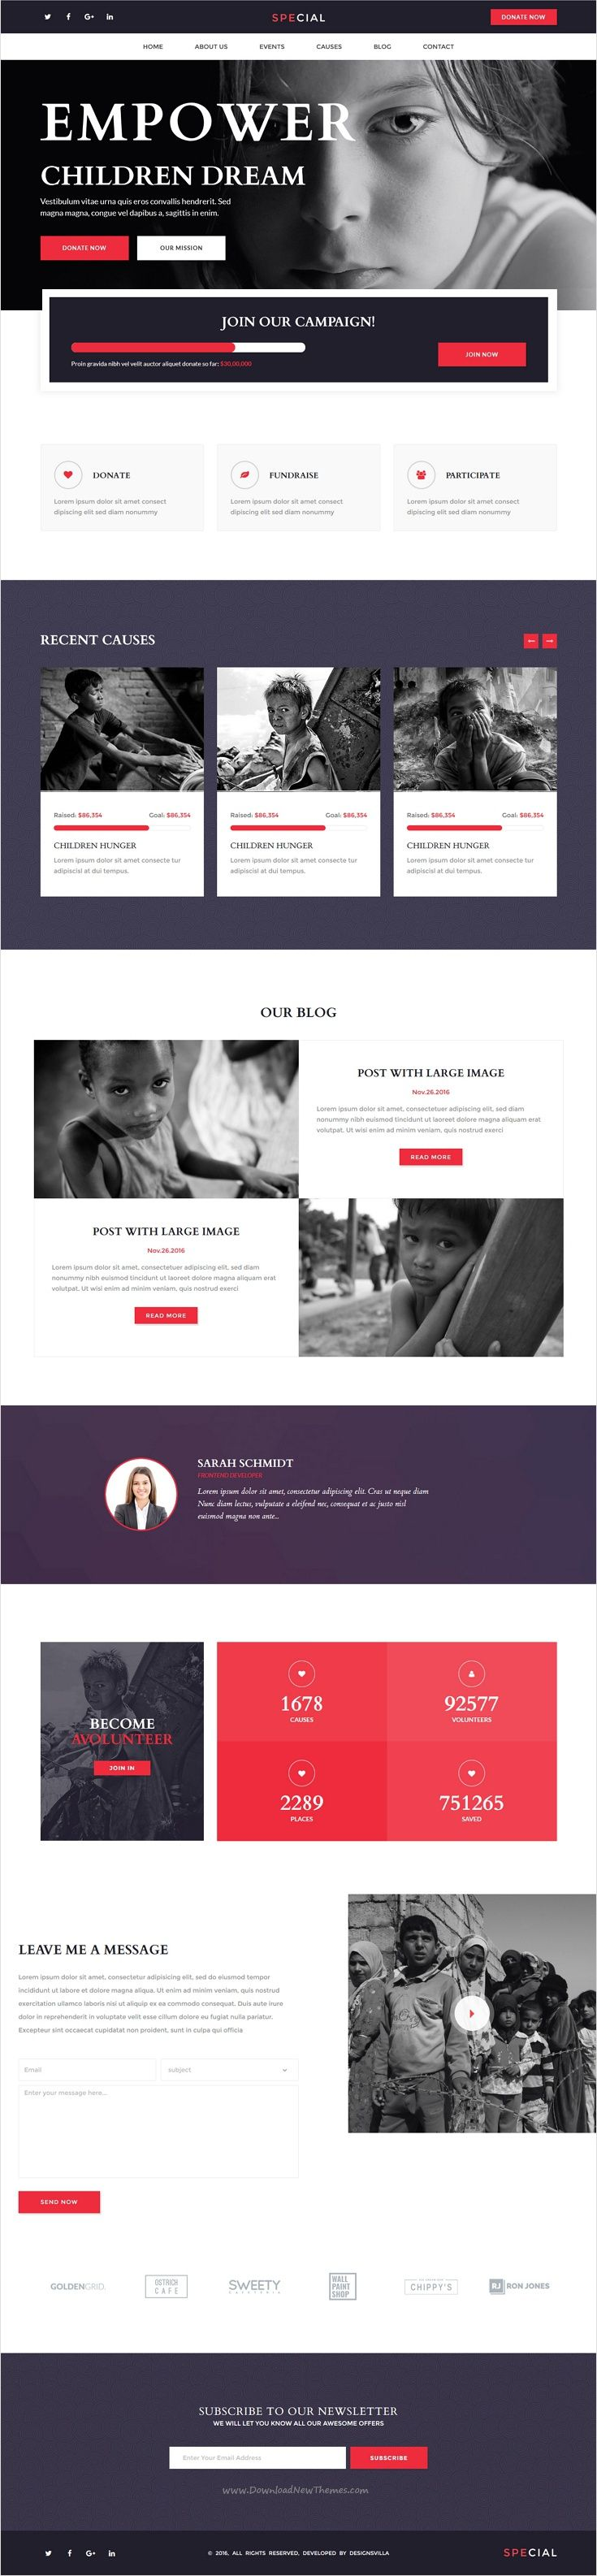 Special is a multipurpose #bootstrap landing page template #charity #help #webdev with HTML Page Builder, unique and elegant designs with 28+ stunning homepage layouts 500+ elements and amazing features download now➩ https://wrapbootstrap.com/theme/special-landing-page-pack-html-builder-WB0J8L557?ref=datasata